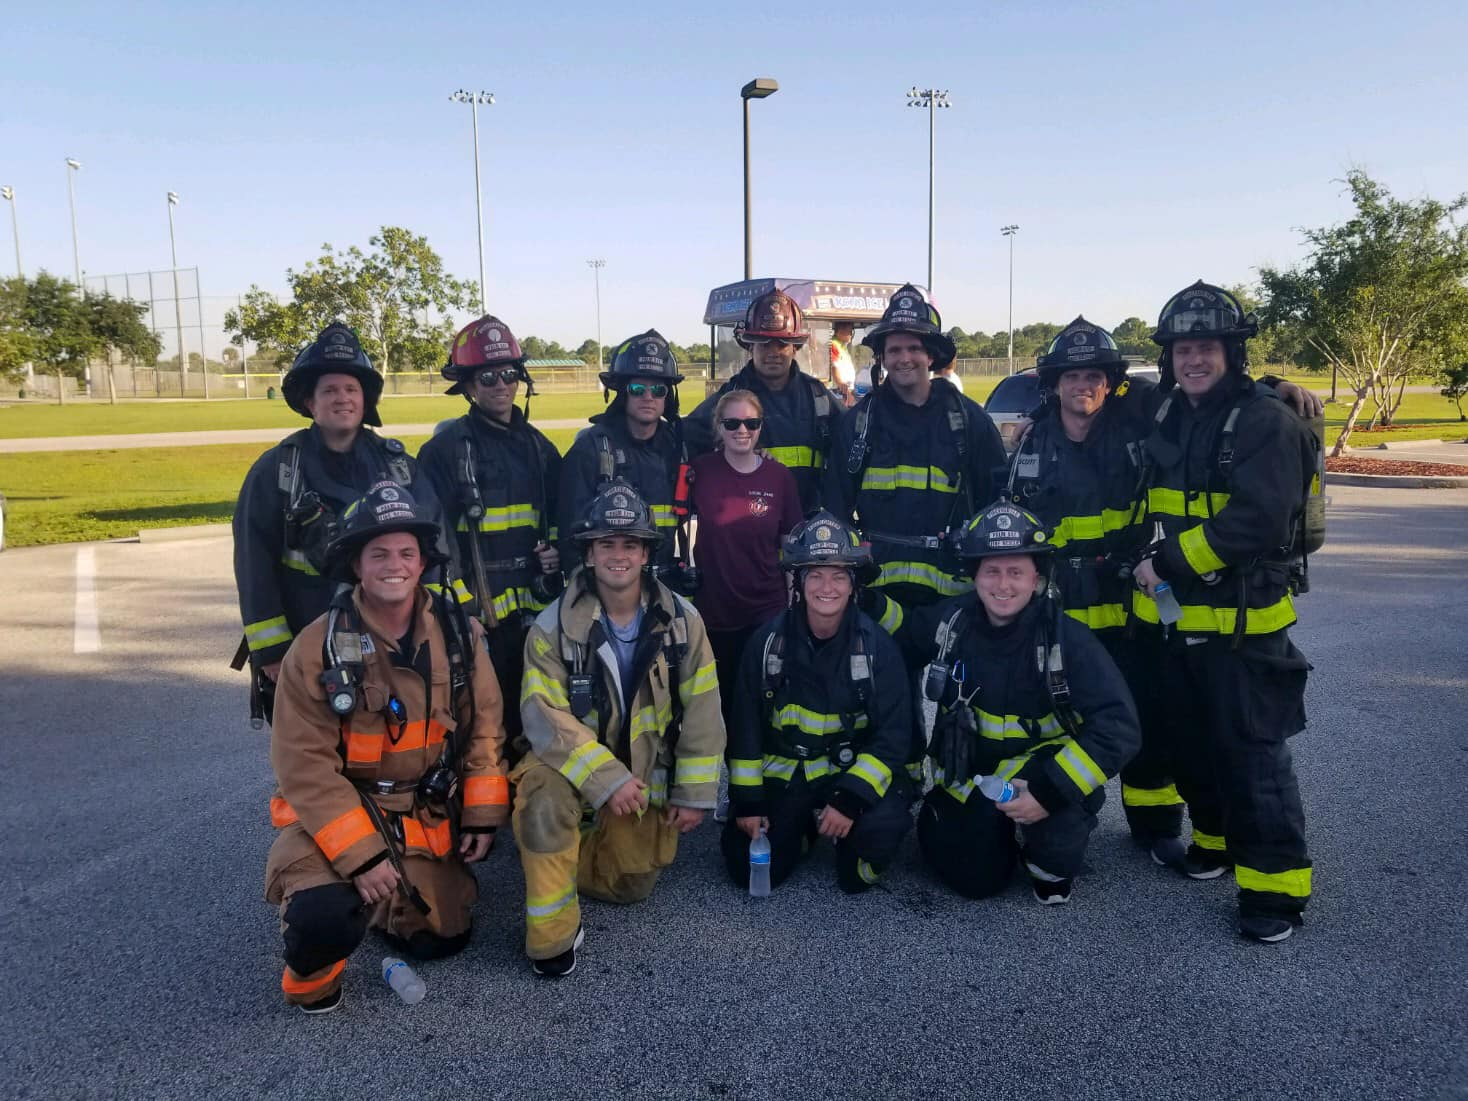 Fire Rescue Place 1st in Hometown Heroes 5k